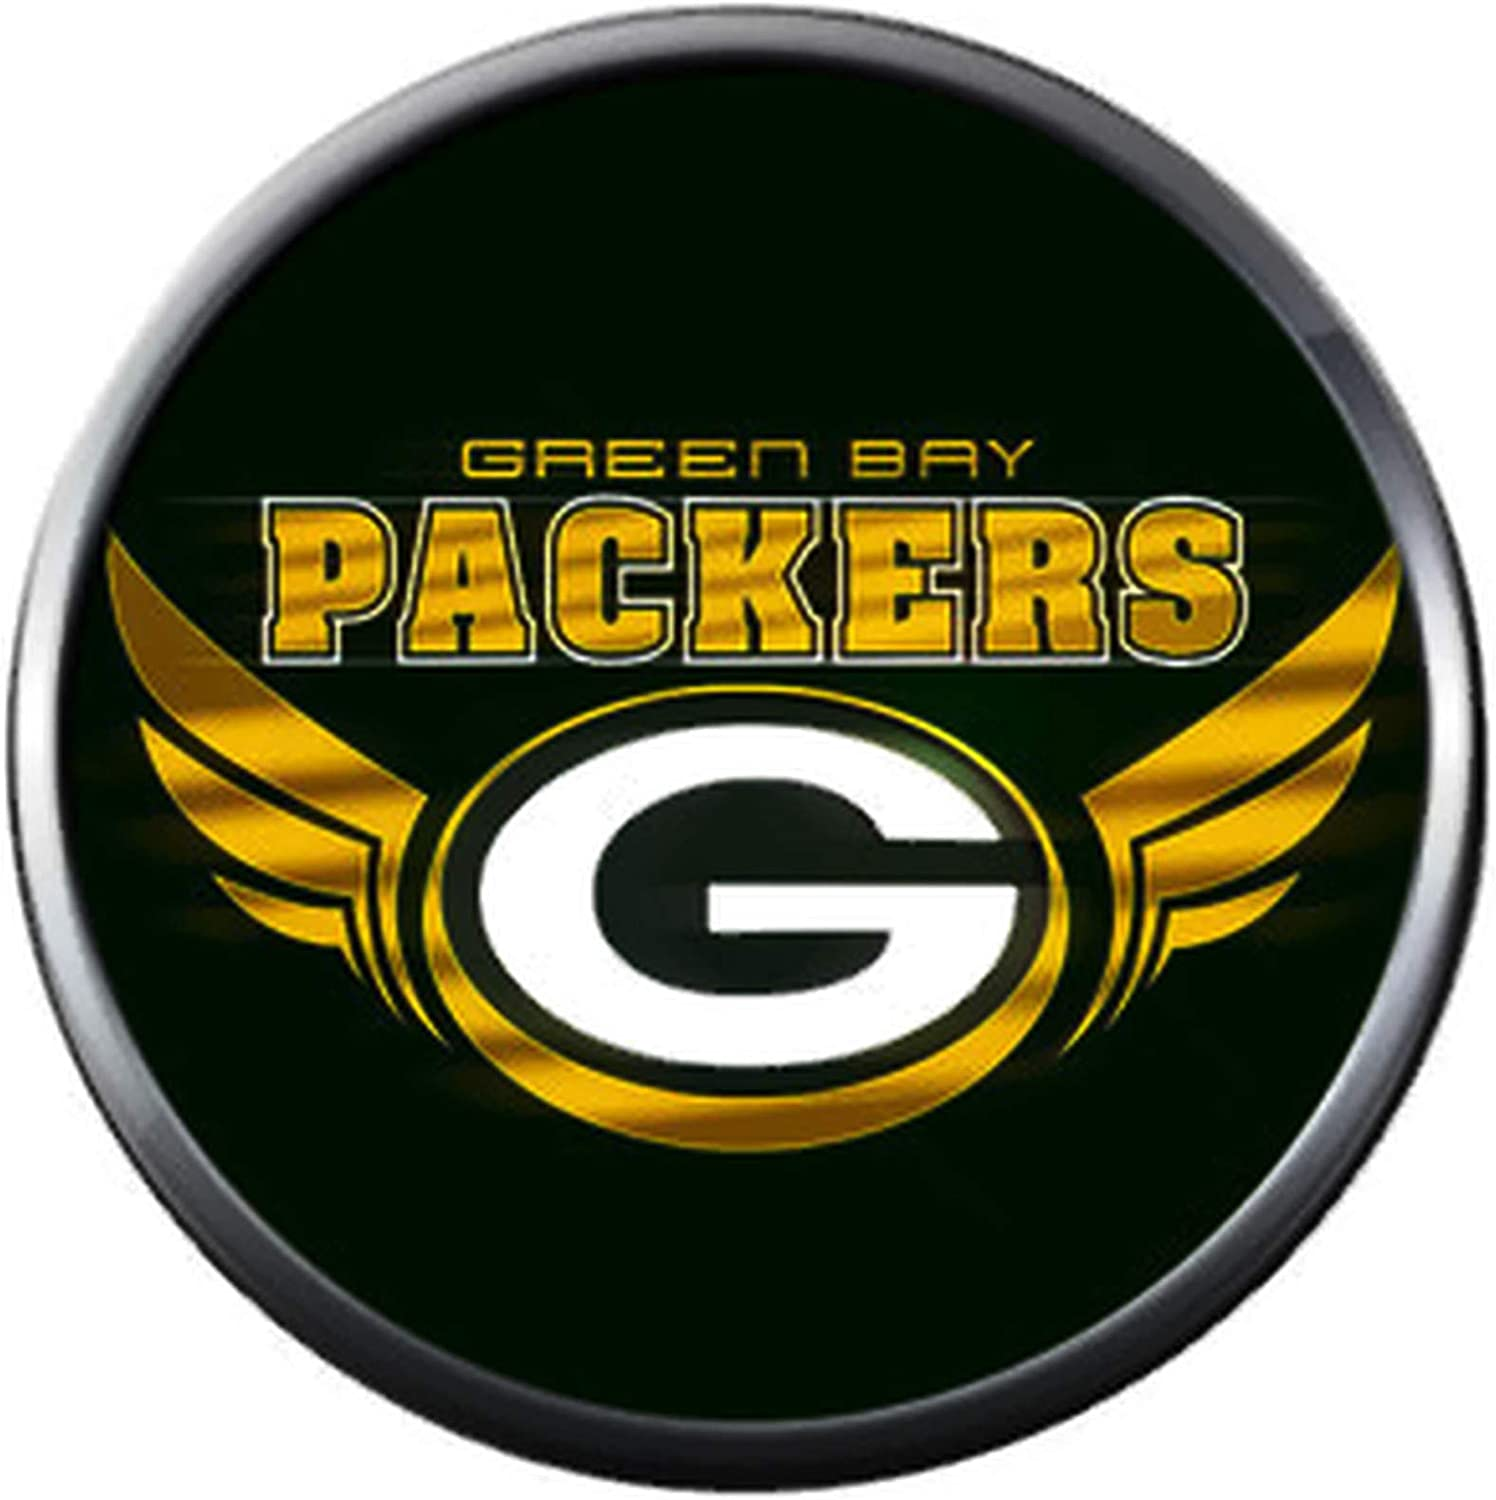 Green Bay Packers Logo - Green Bay Packers Silhouette ...